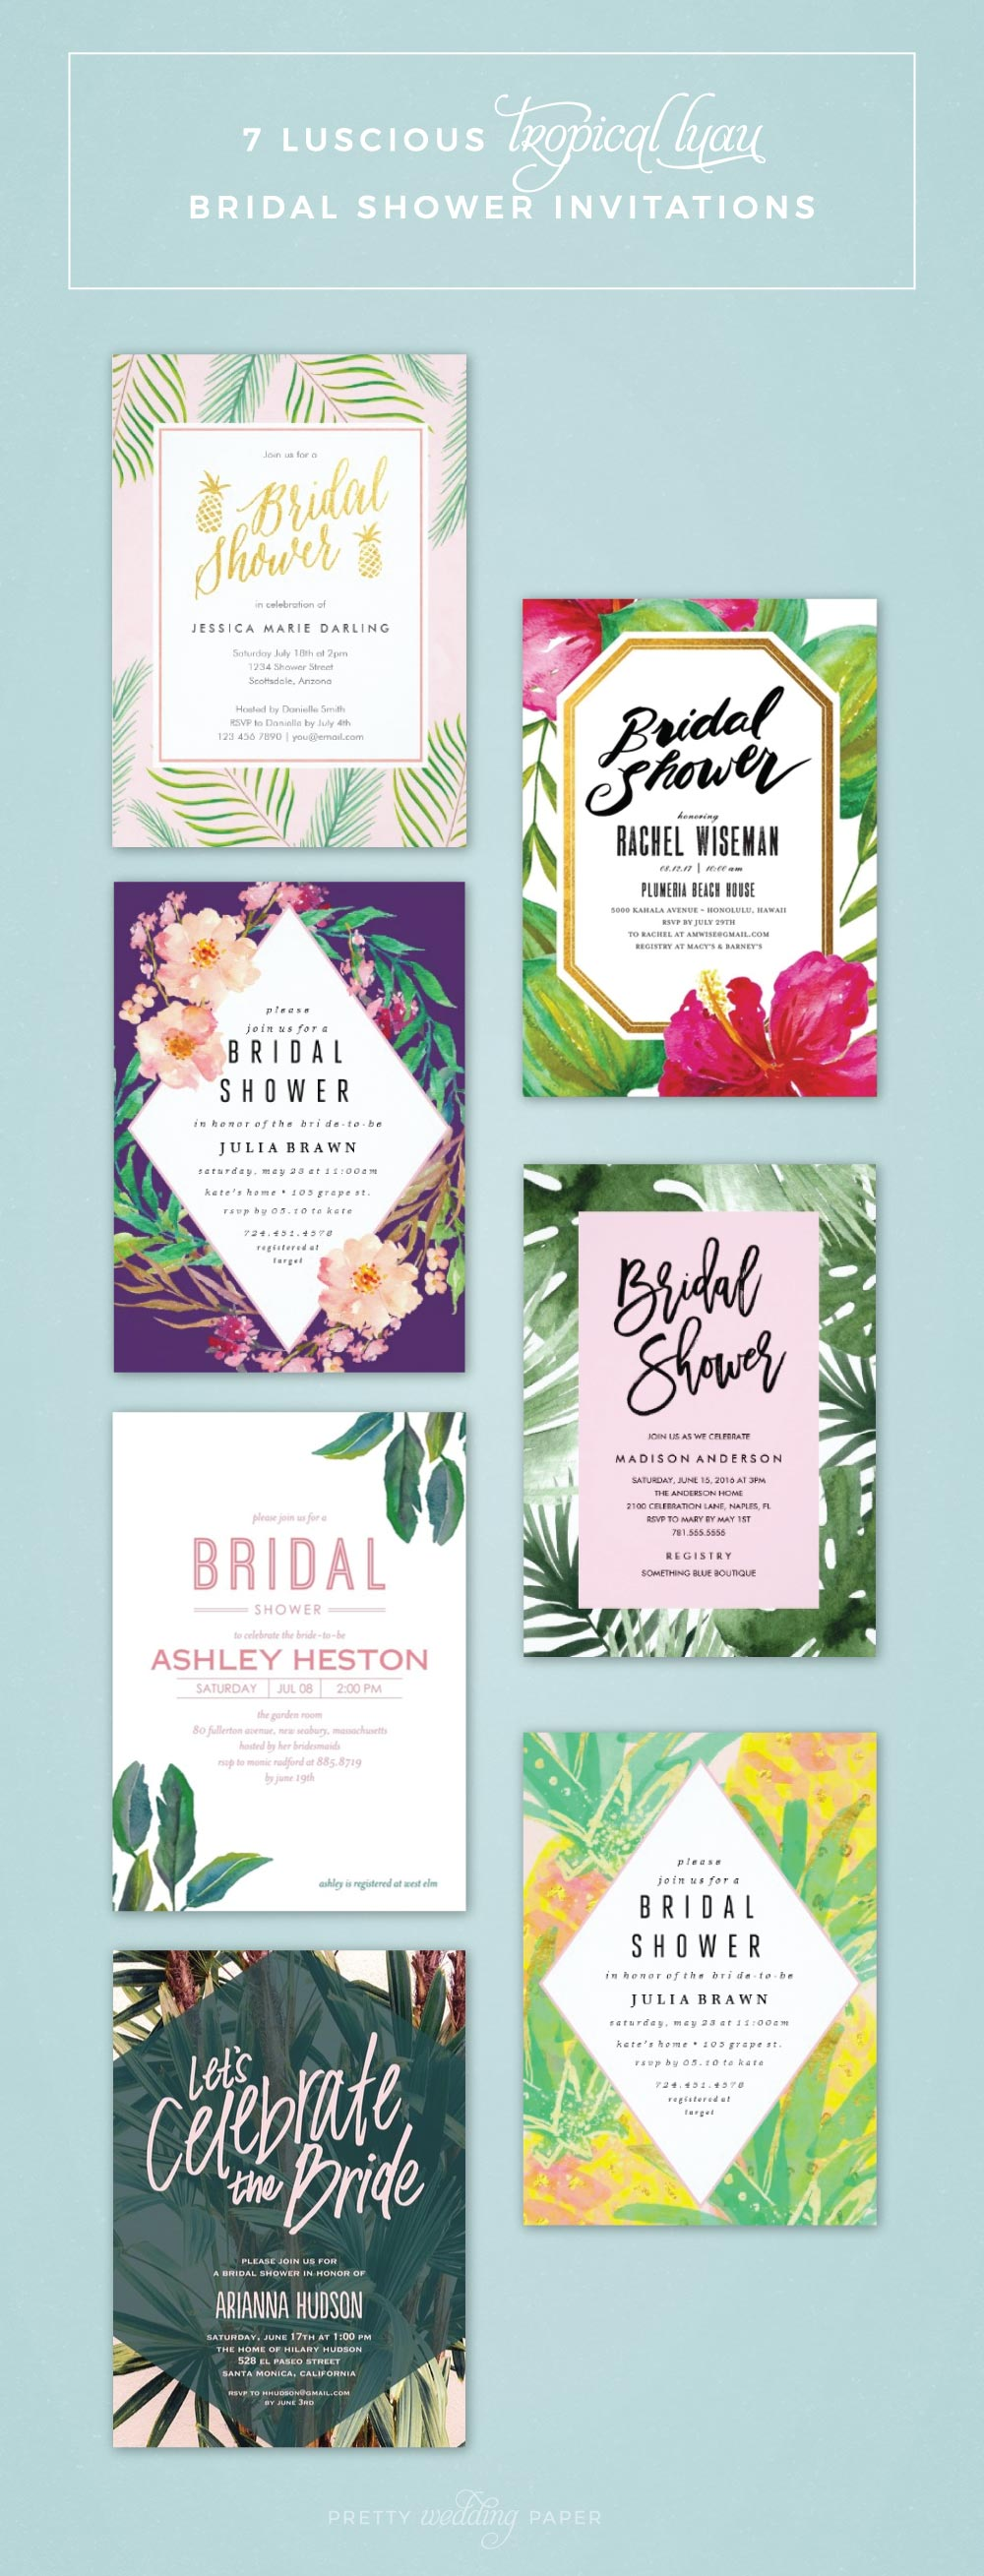 7 luscious tropical bridal shower invitations lets luau